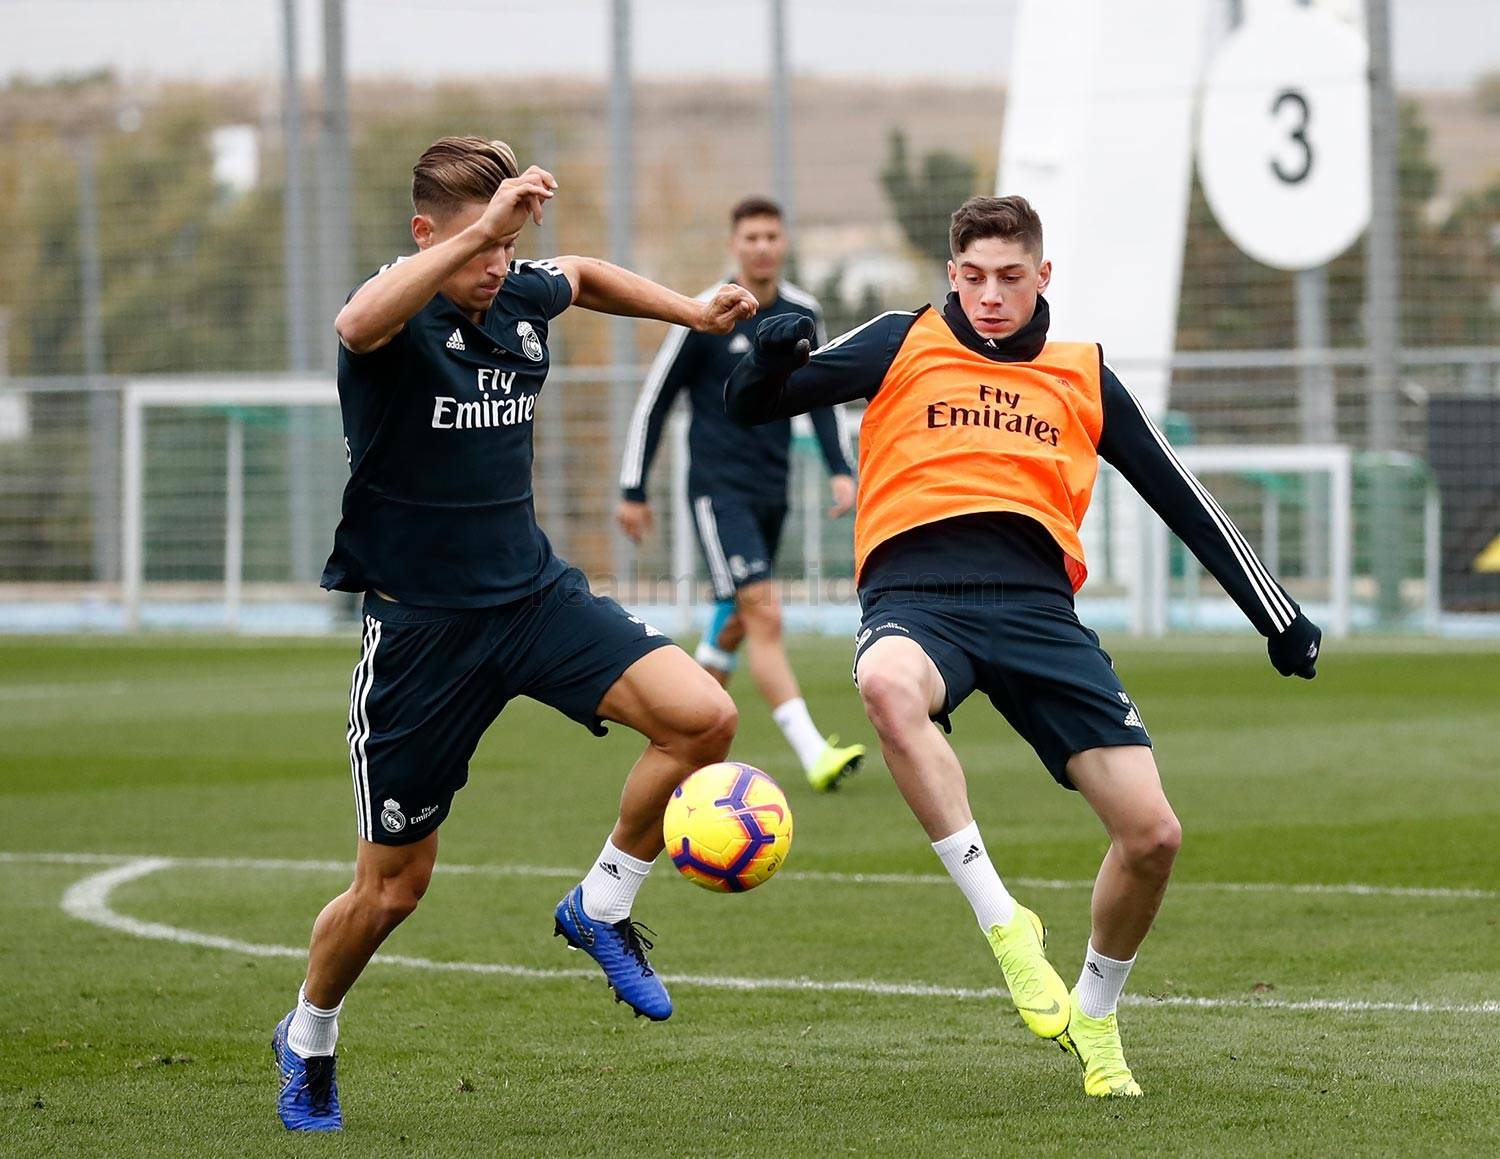 Real Madrid - Entrenamiento del Real Madrid - 08-11-2018